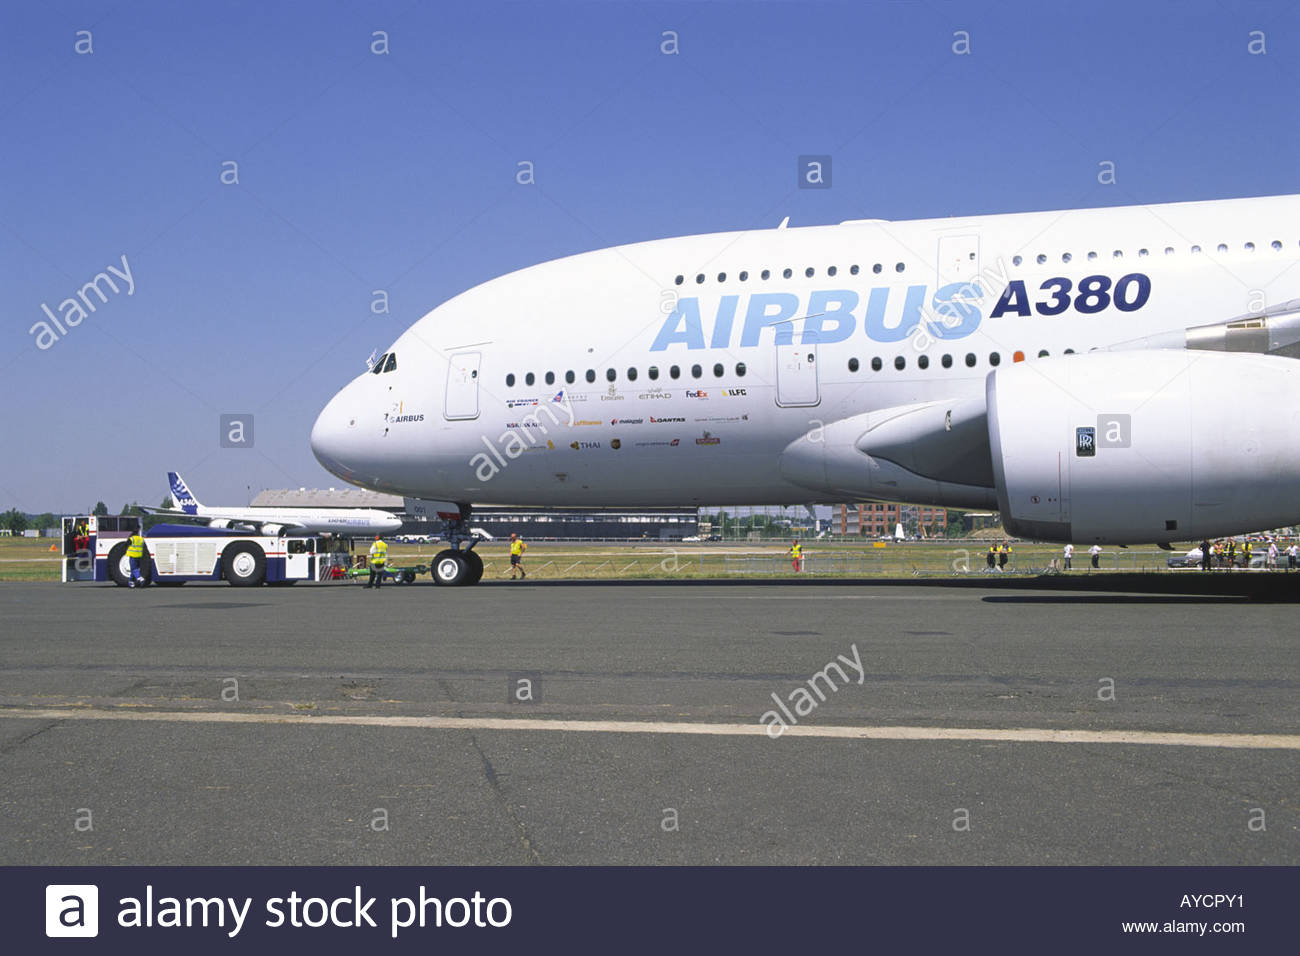 Airbus A380 aircraft tug with Airbus A340  600 in background at 1300x956